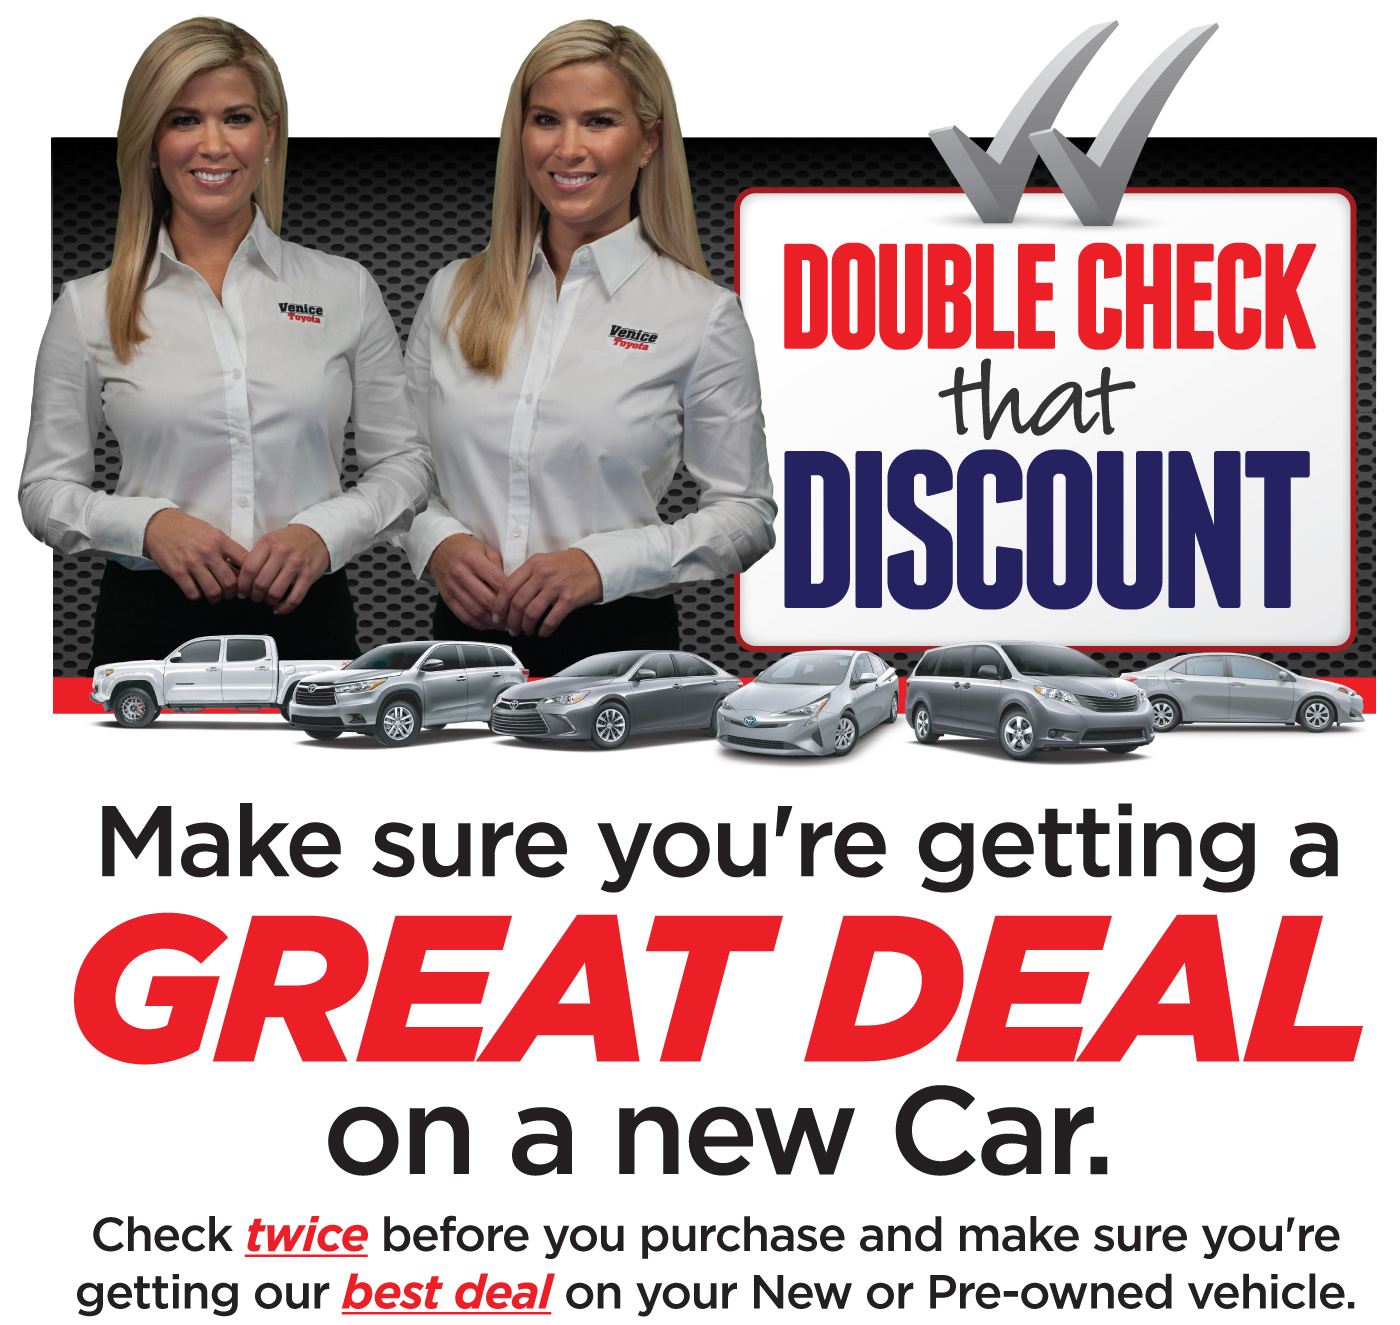 Double Check that Discount. Make Sure You are Getting a Great Deal on a new car.